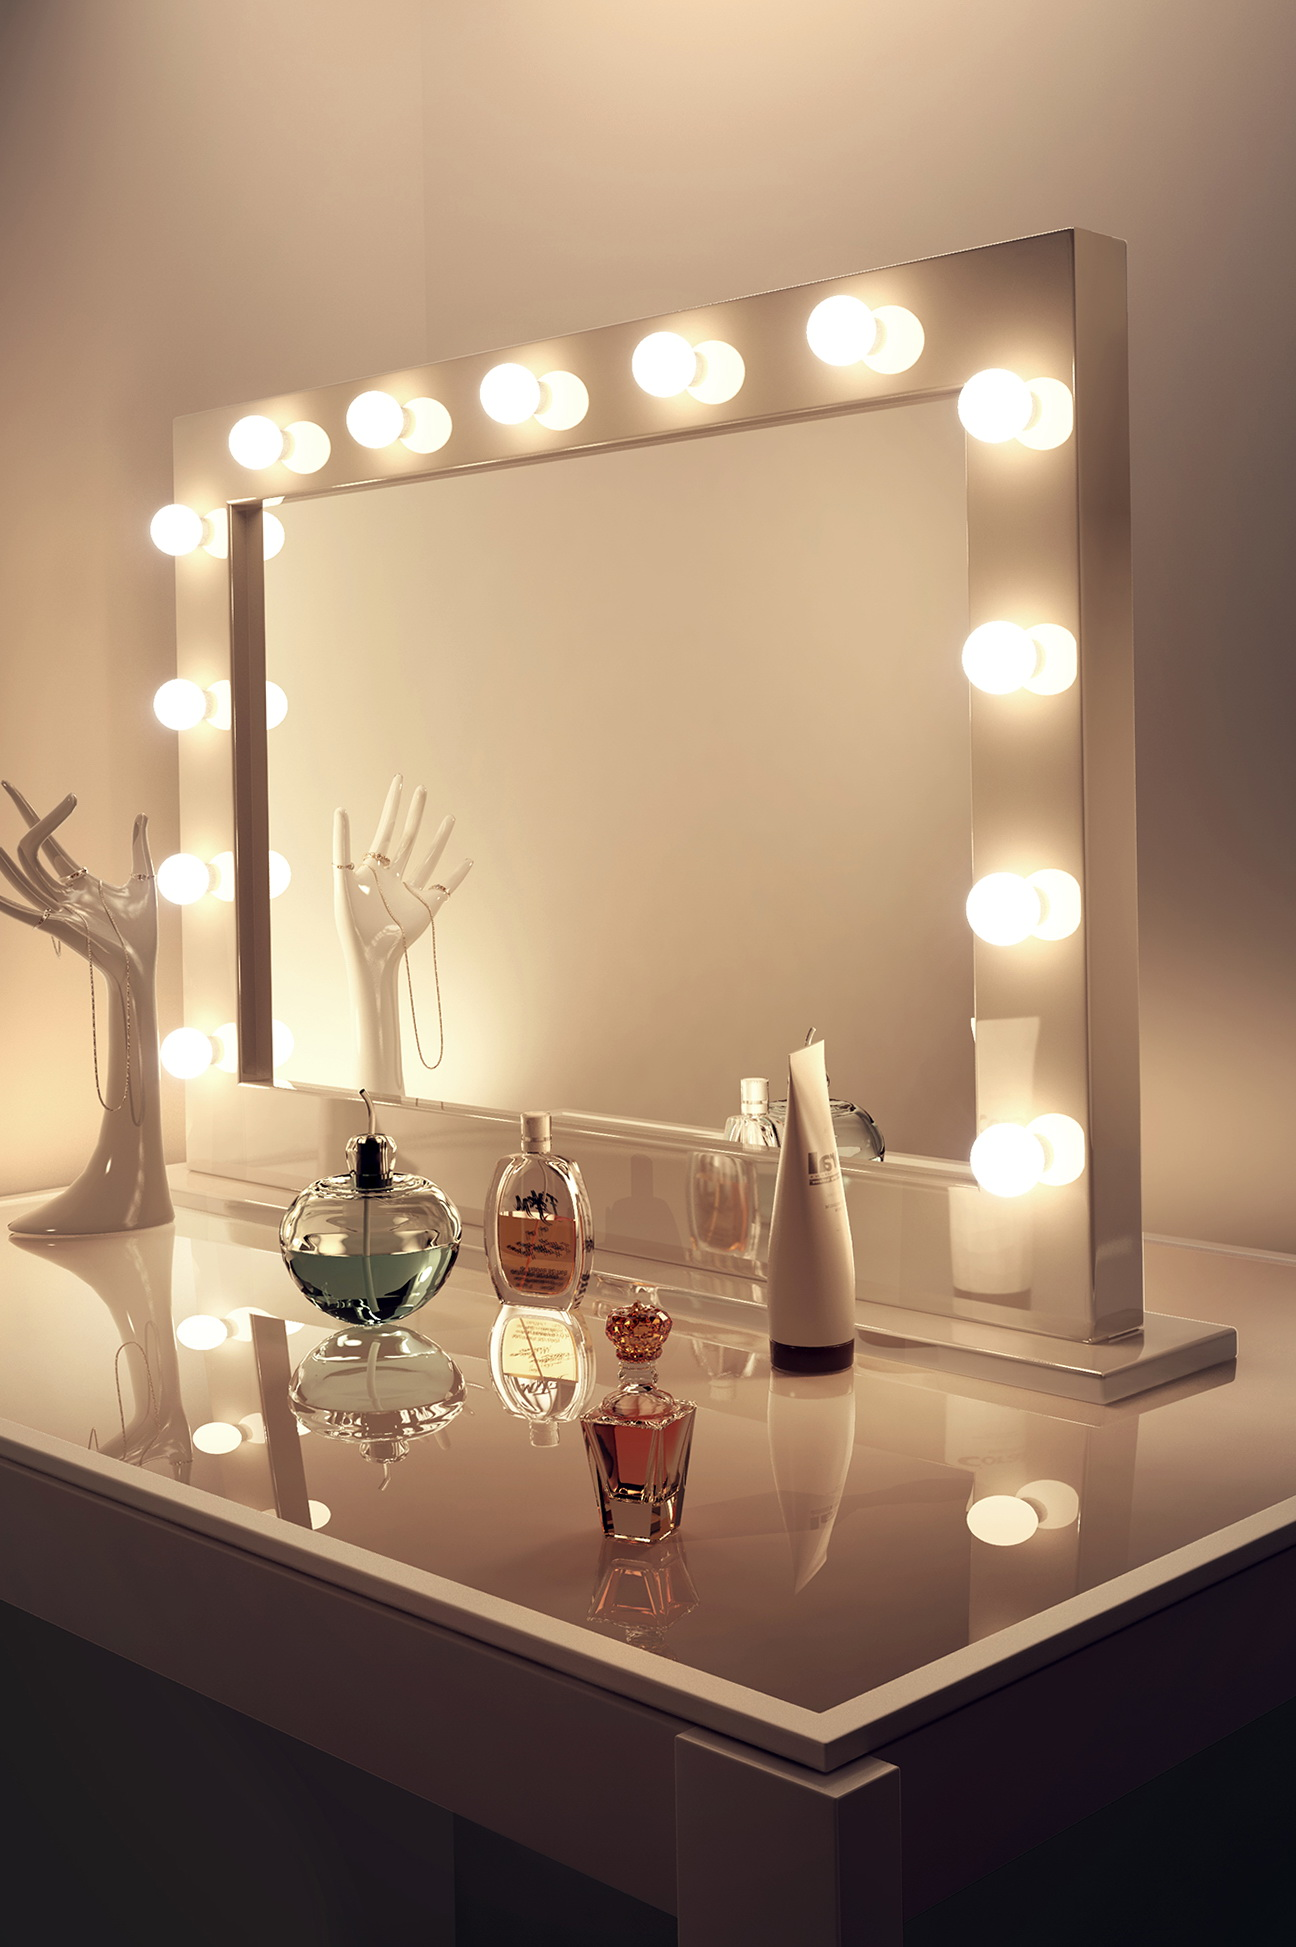 Makeup Mirrors With Lights Around Them Home Design Ideas